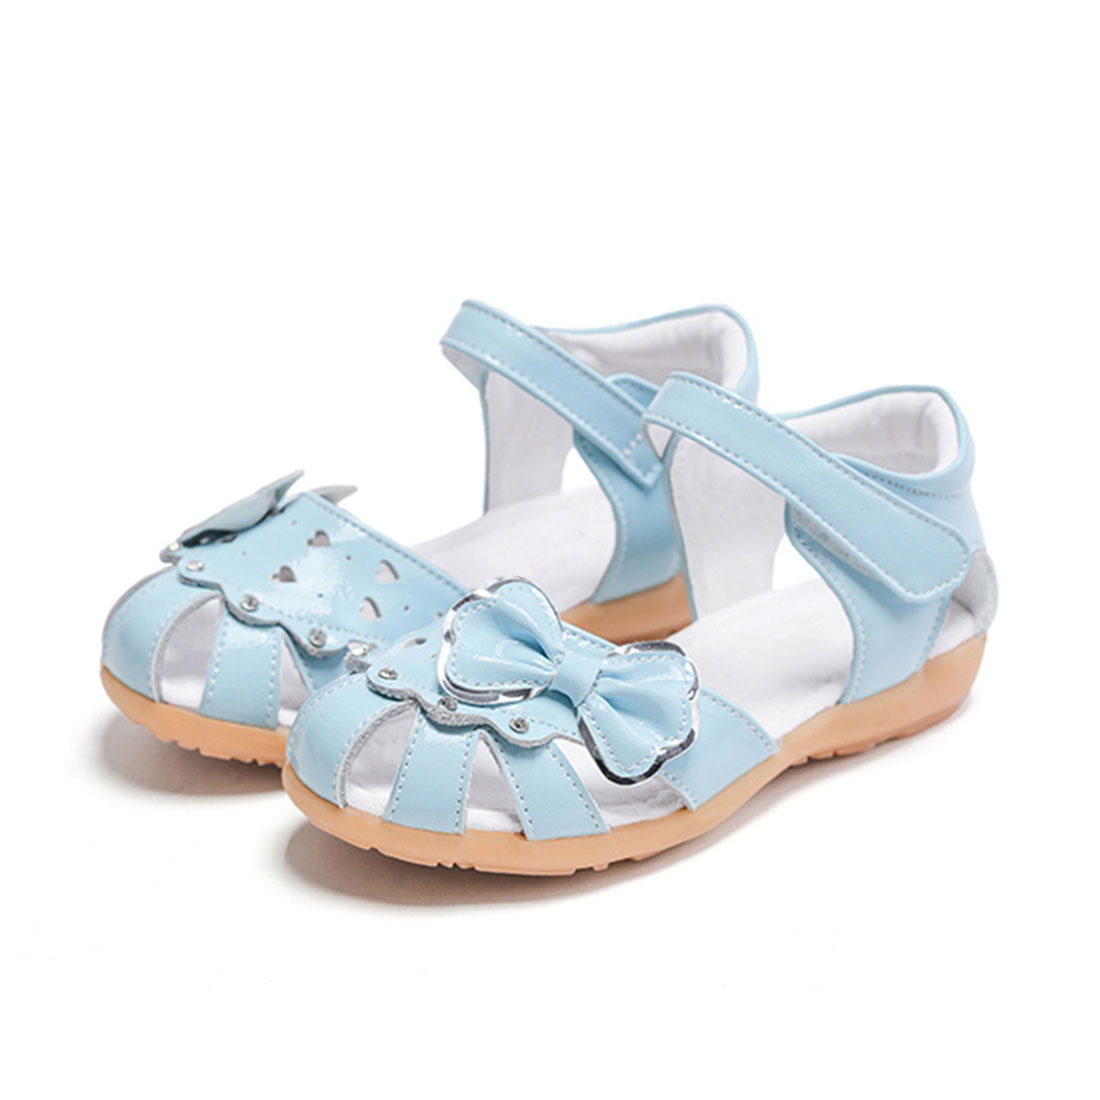 Patent leather light blue flat cute summer bow design children sandals shoes